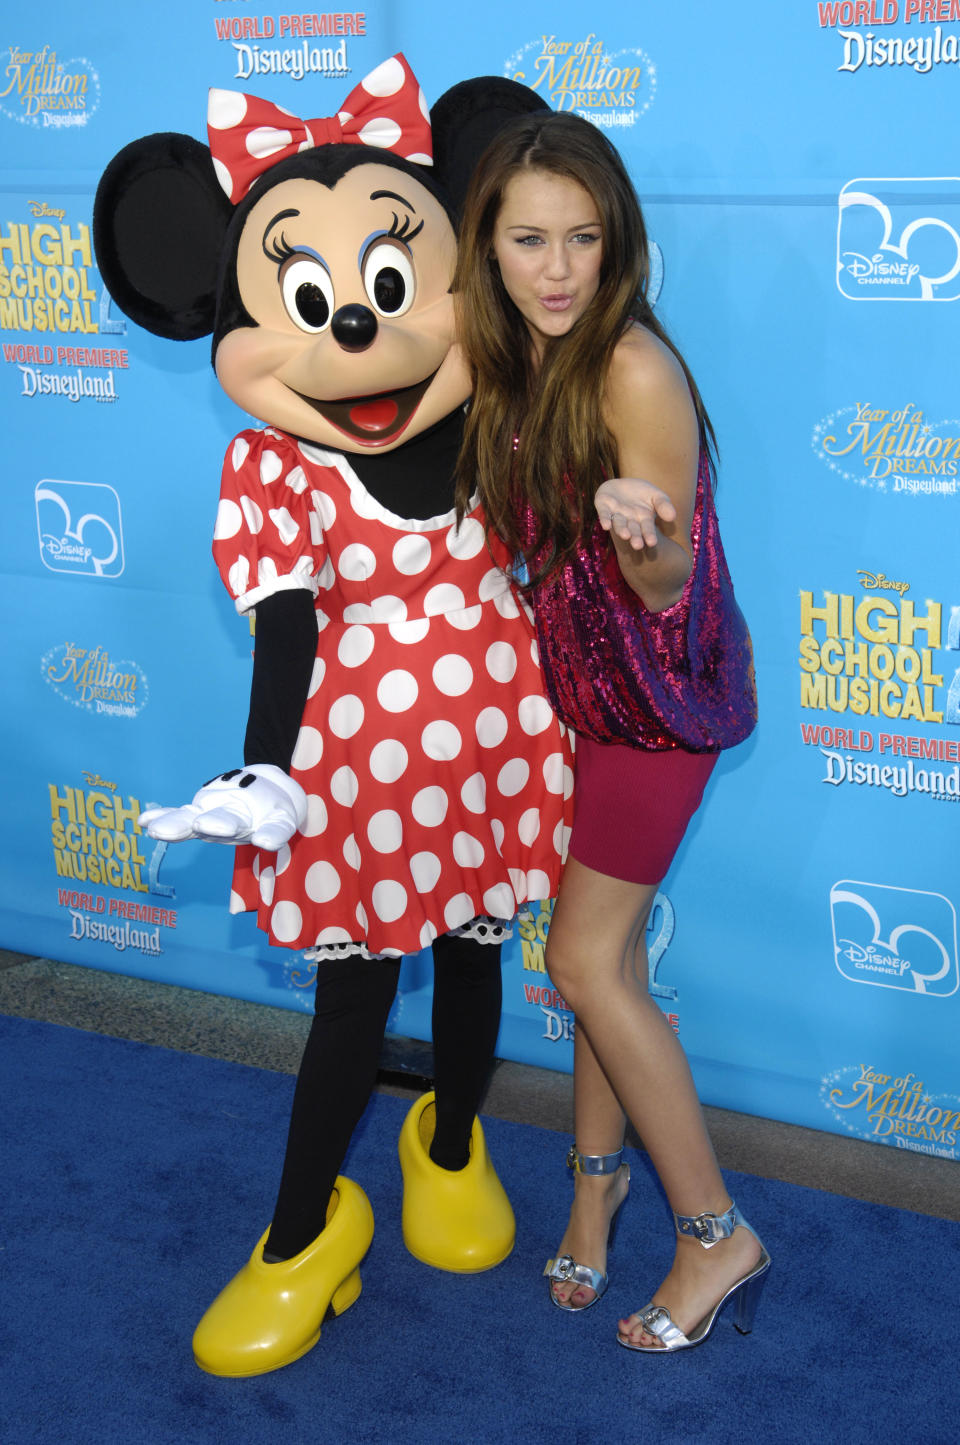 """Actress Miley Cyrus, right, is seen with character Minnie Mouse during arrivals to the premiere of """"High School Musical 2"""" at Disneyland in Anaheim, Calif., Tuesday, Aug. 14, 2007. (AP Photo/Chris Pizzello)"""